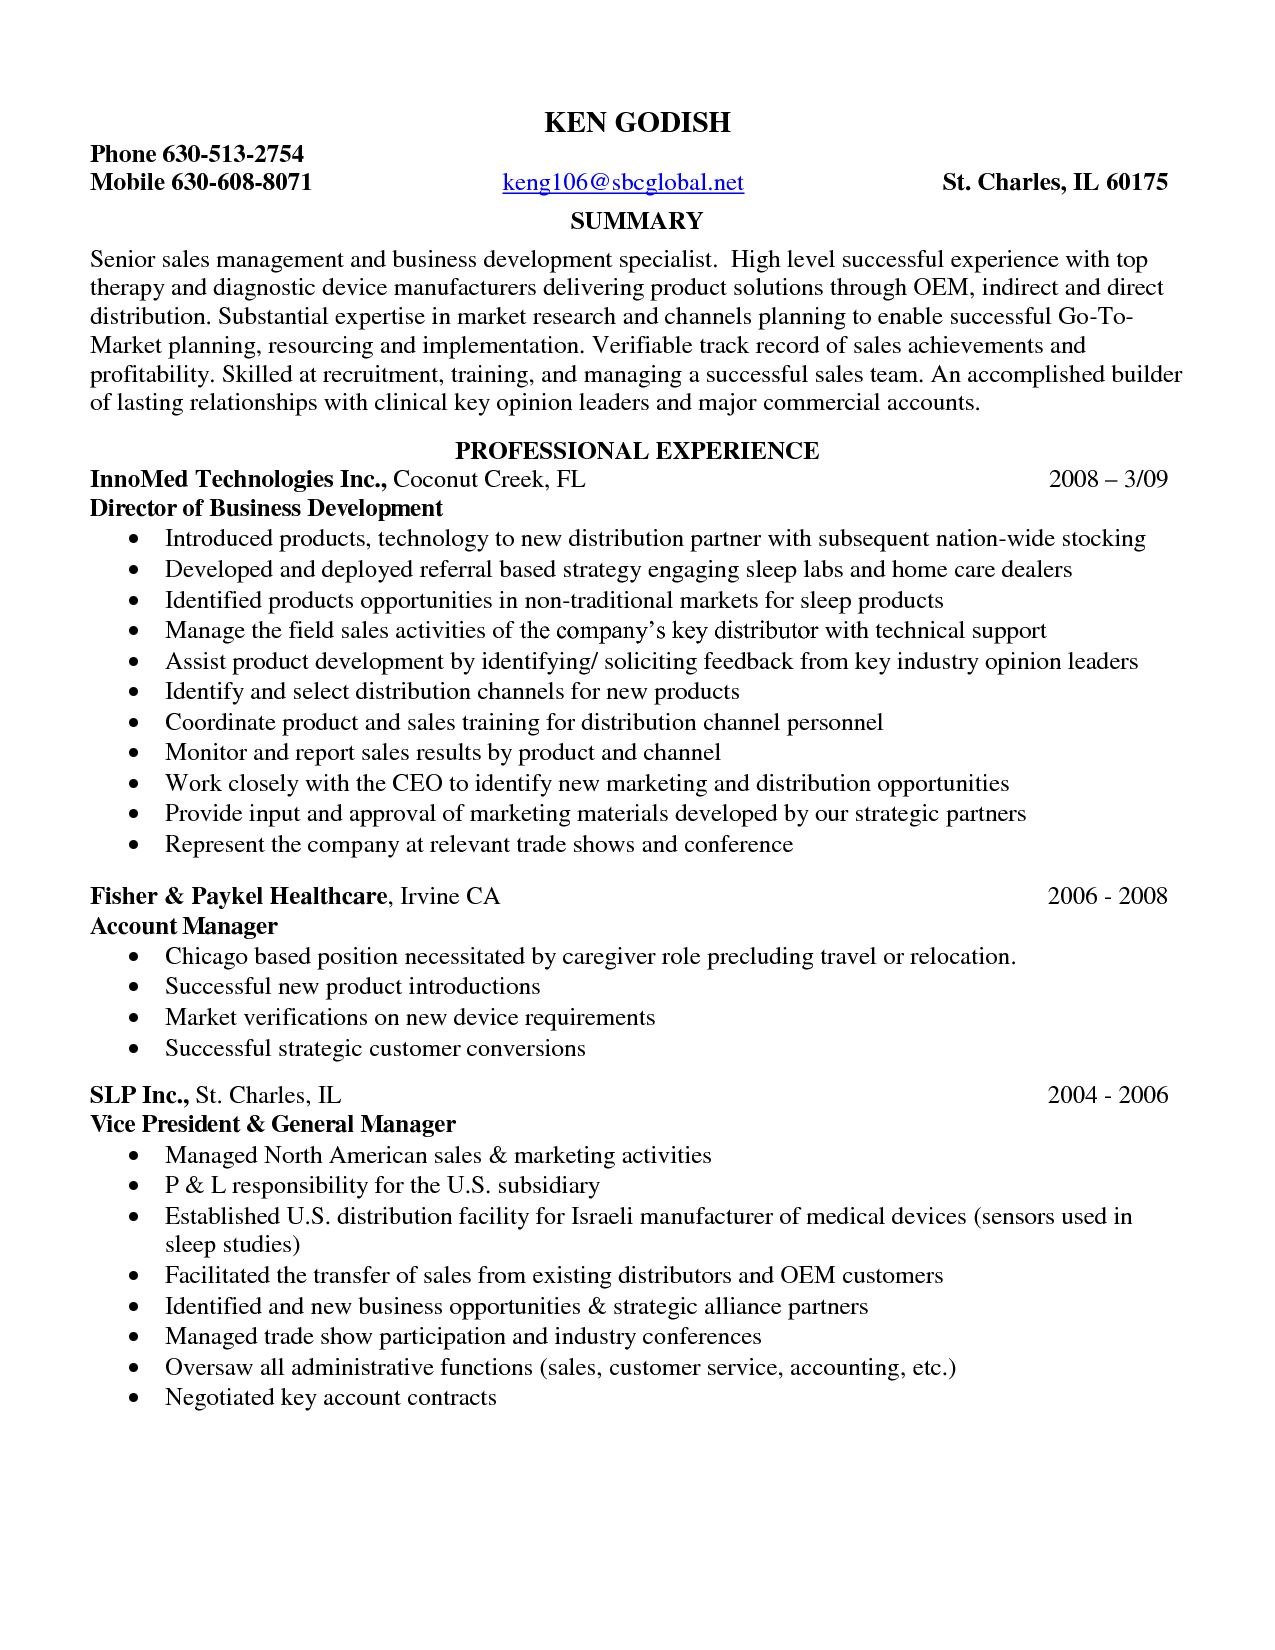 Sample Resume Entry Level Pharmaceutical Sales